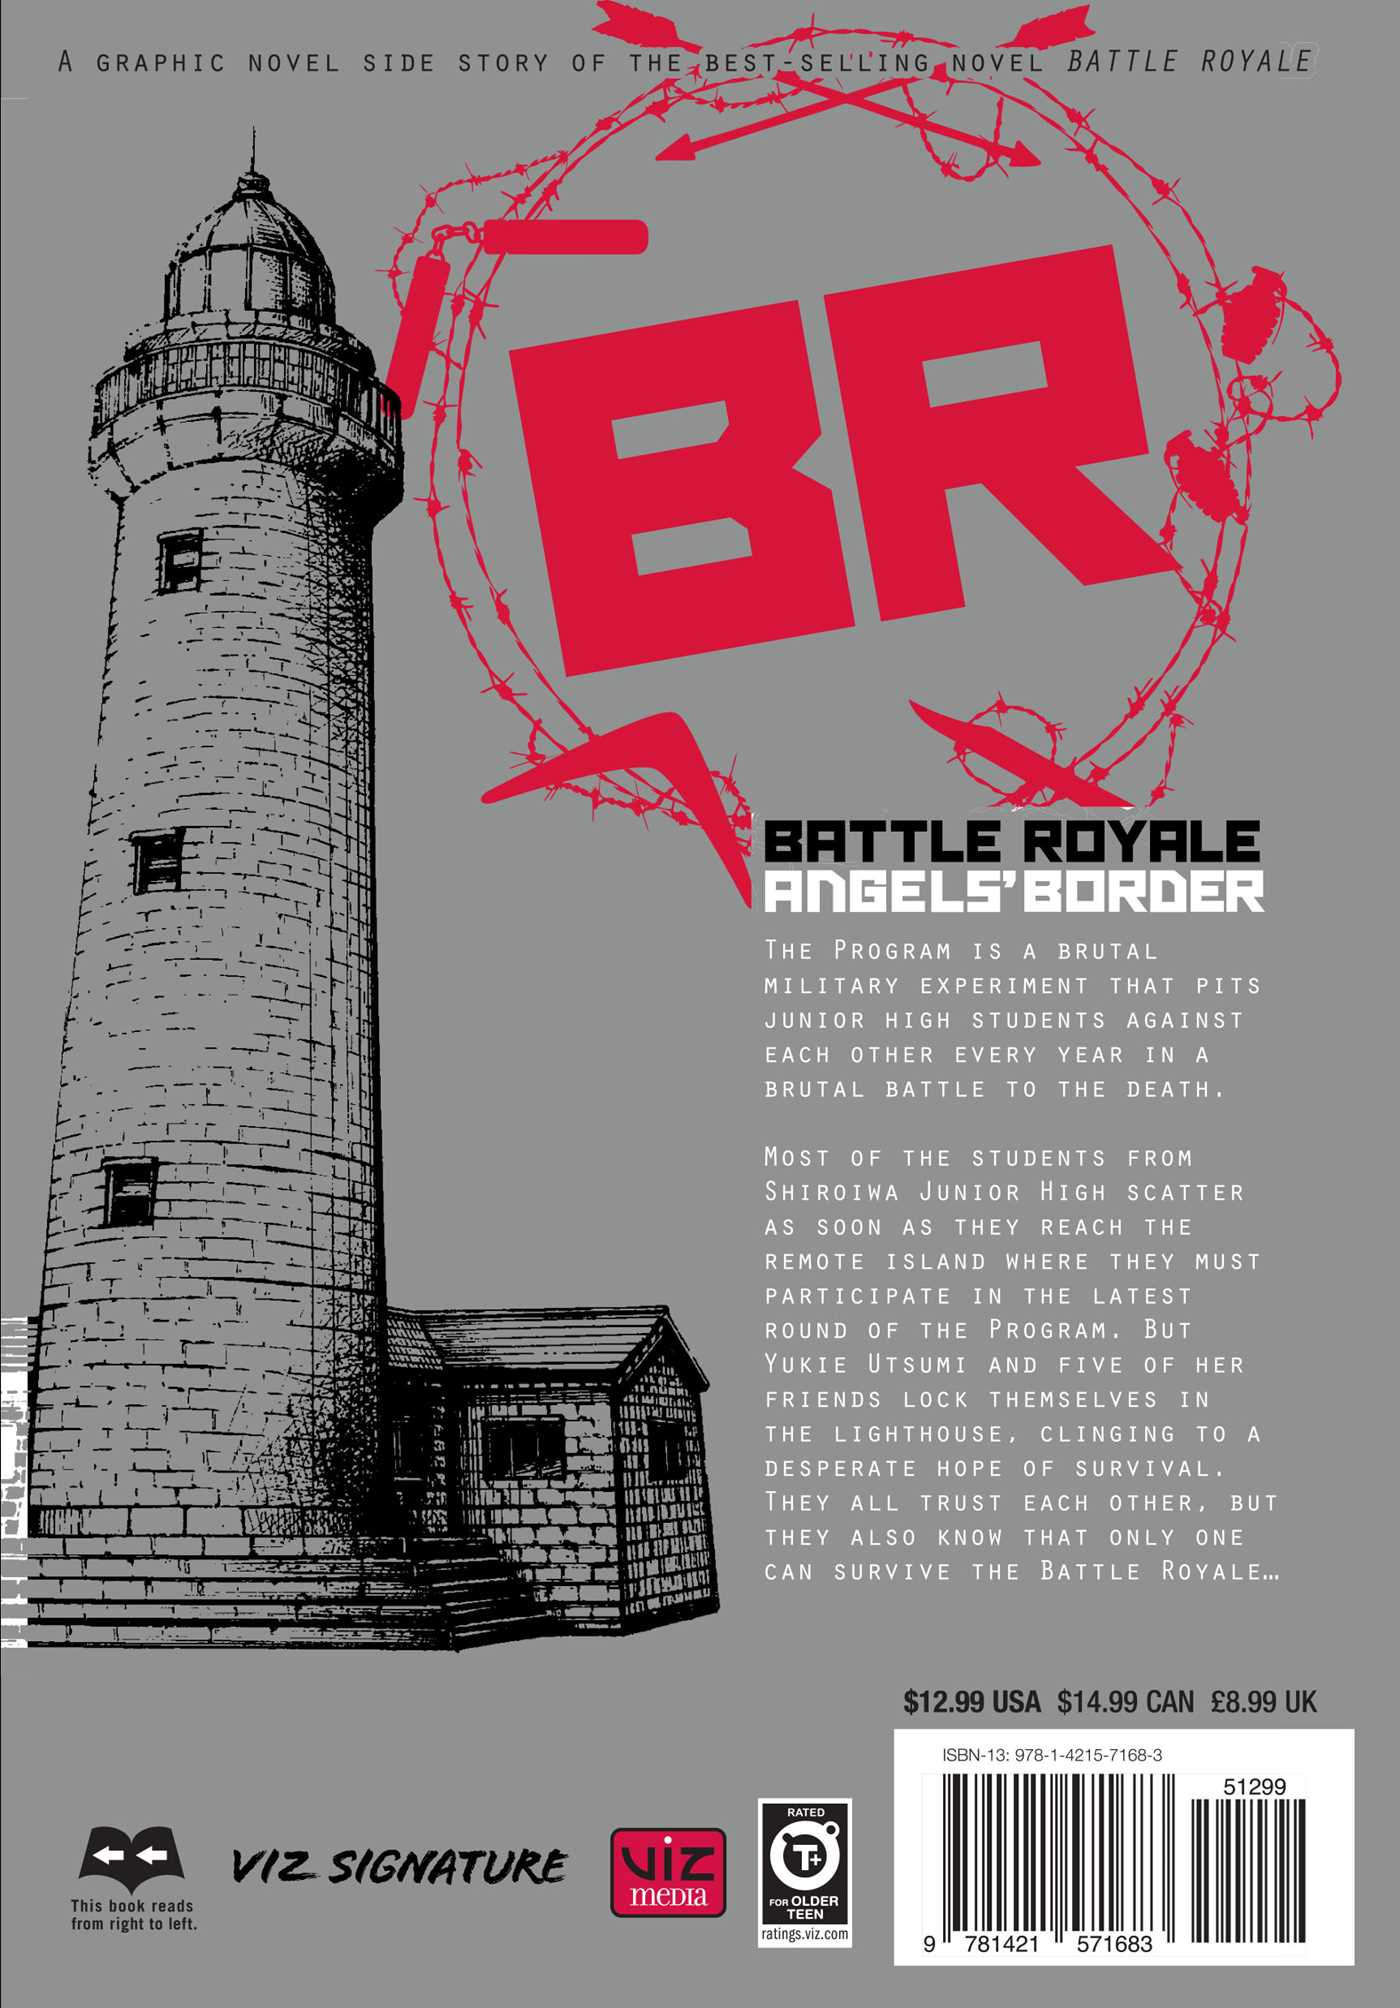 Battle-royale-angels-border-9781421571683_hr-back